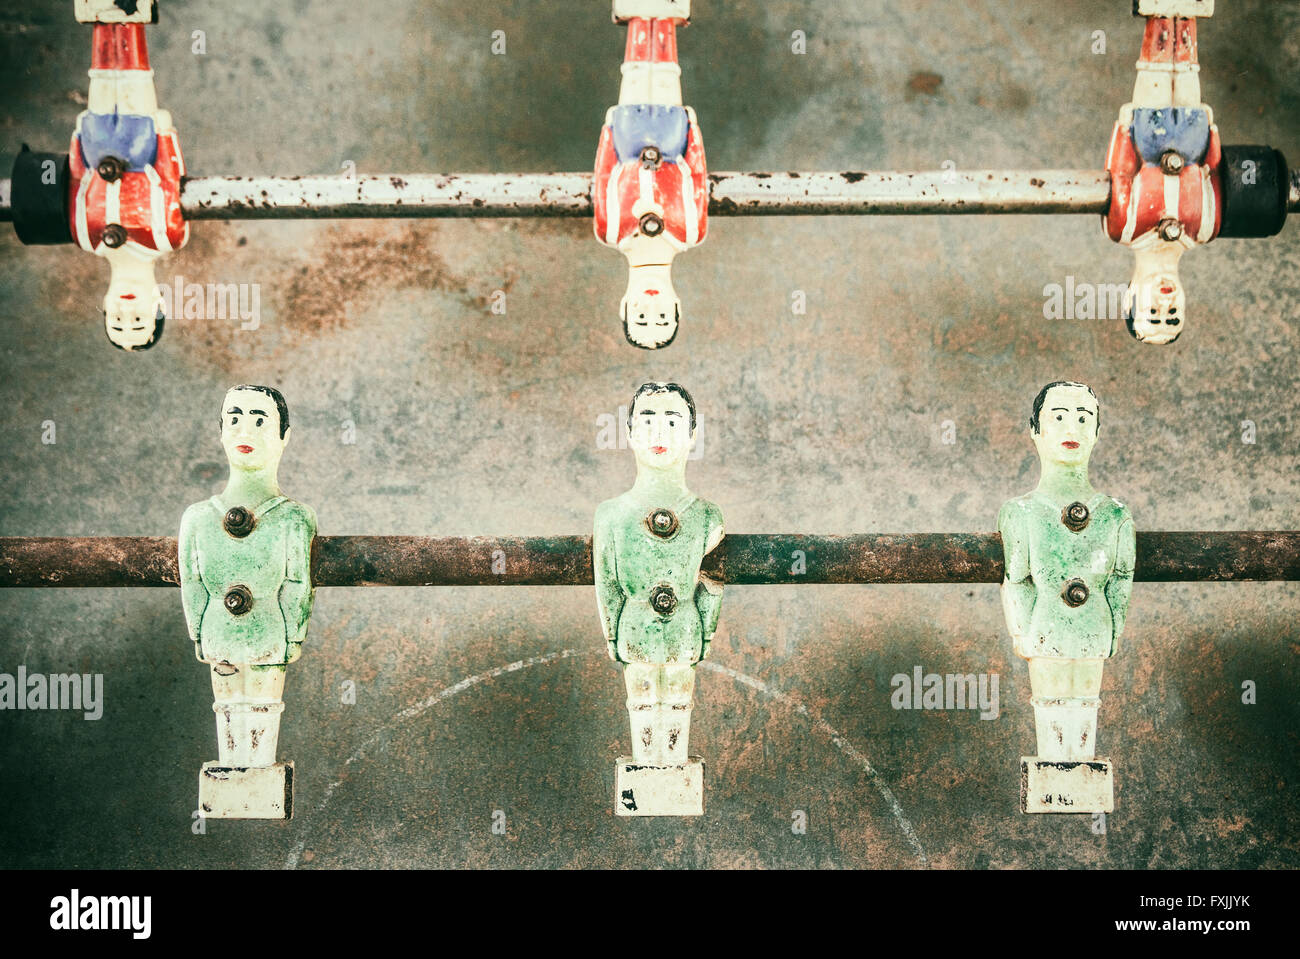 Old rusted table football game - Stock Image